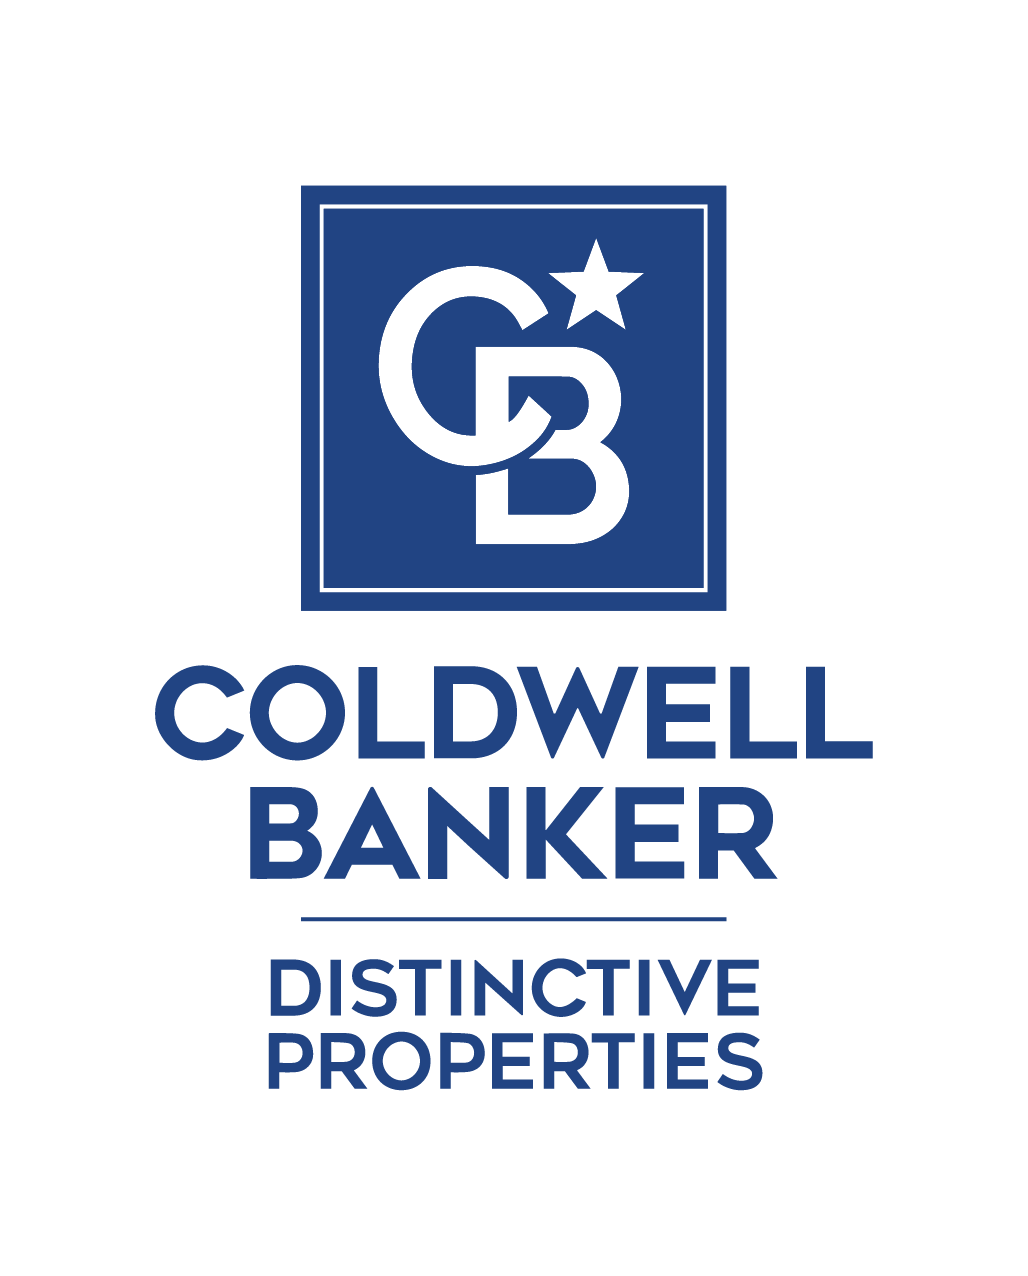 Renevier Real Estate - Coldwell Banker Distinctive Properties